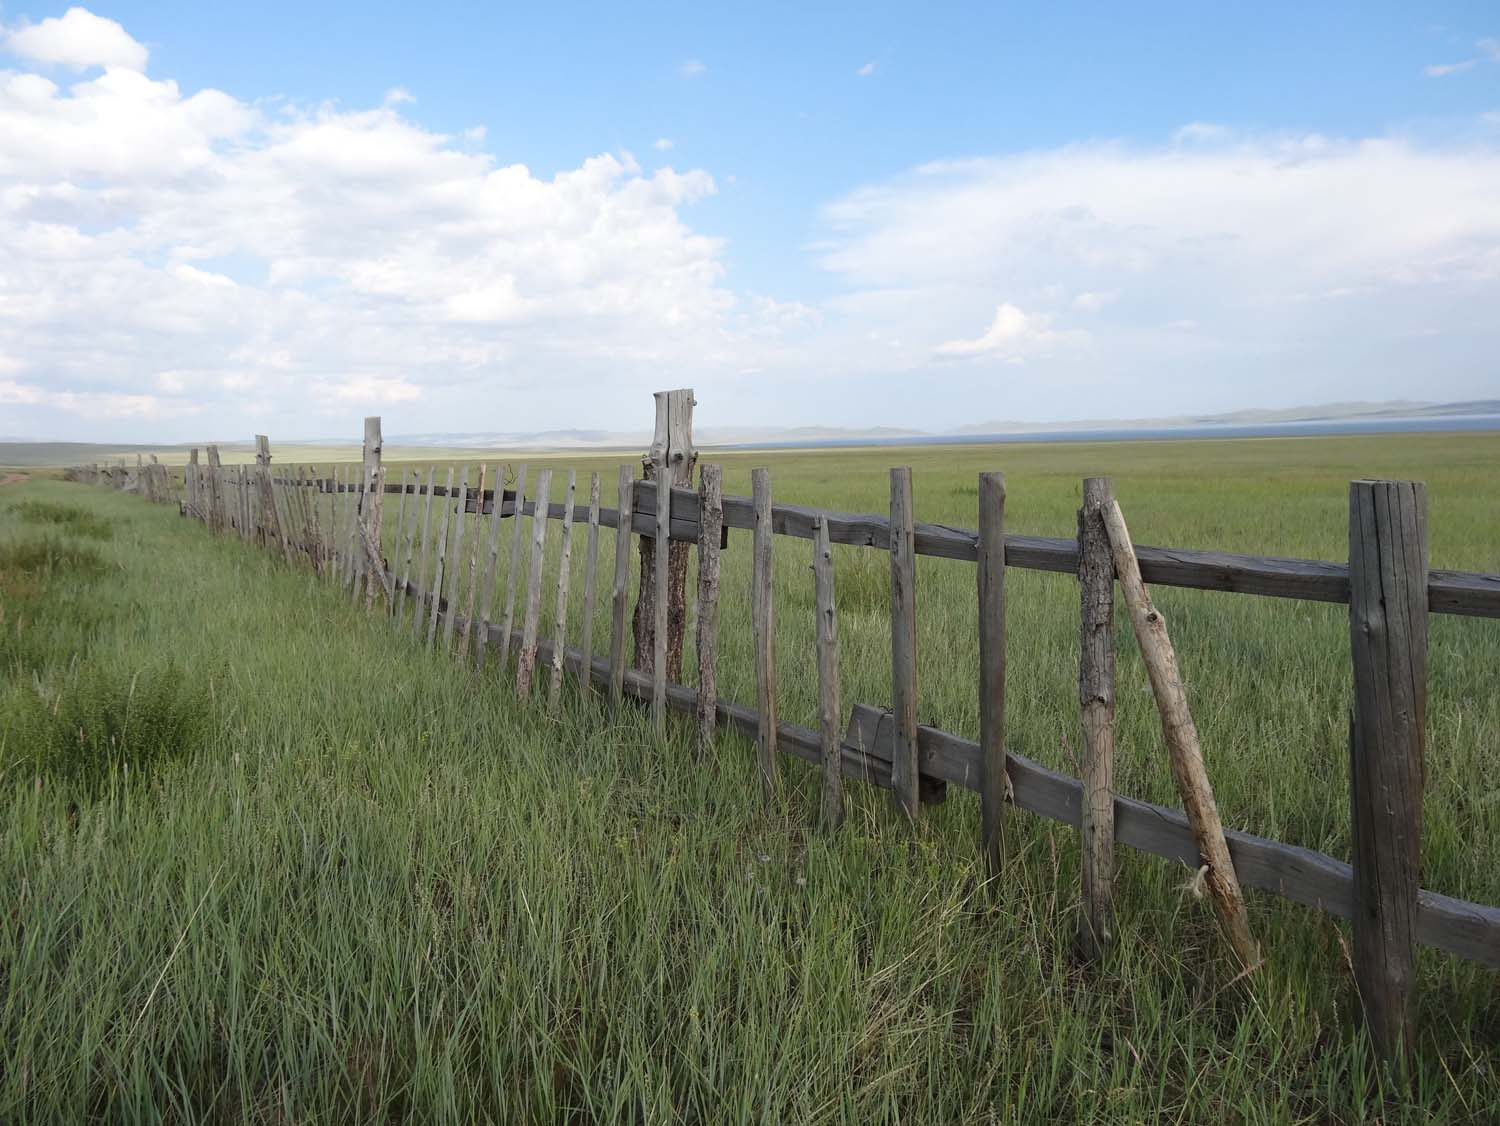 we found the only fence in Mongolia, no idea what it is used for though